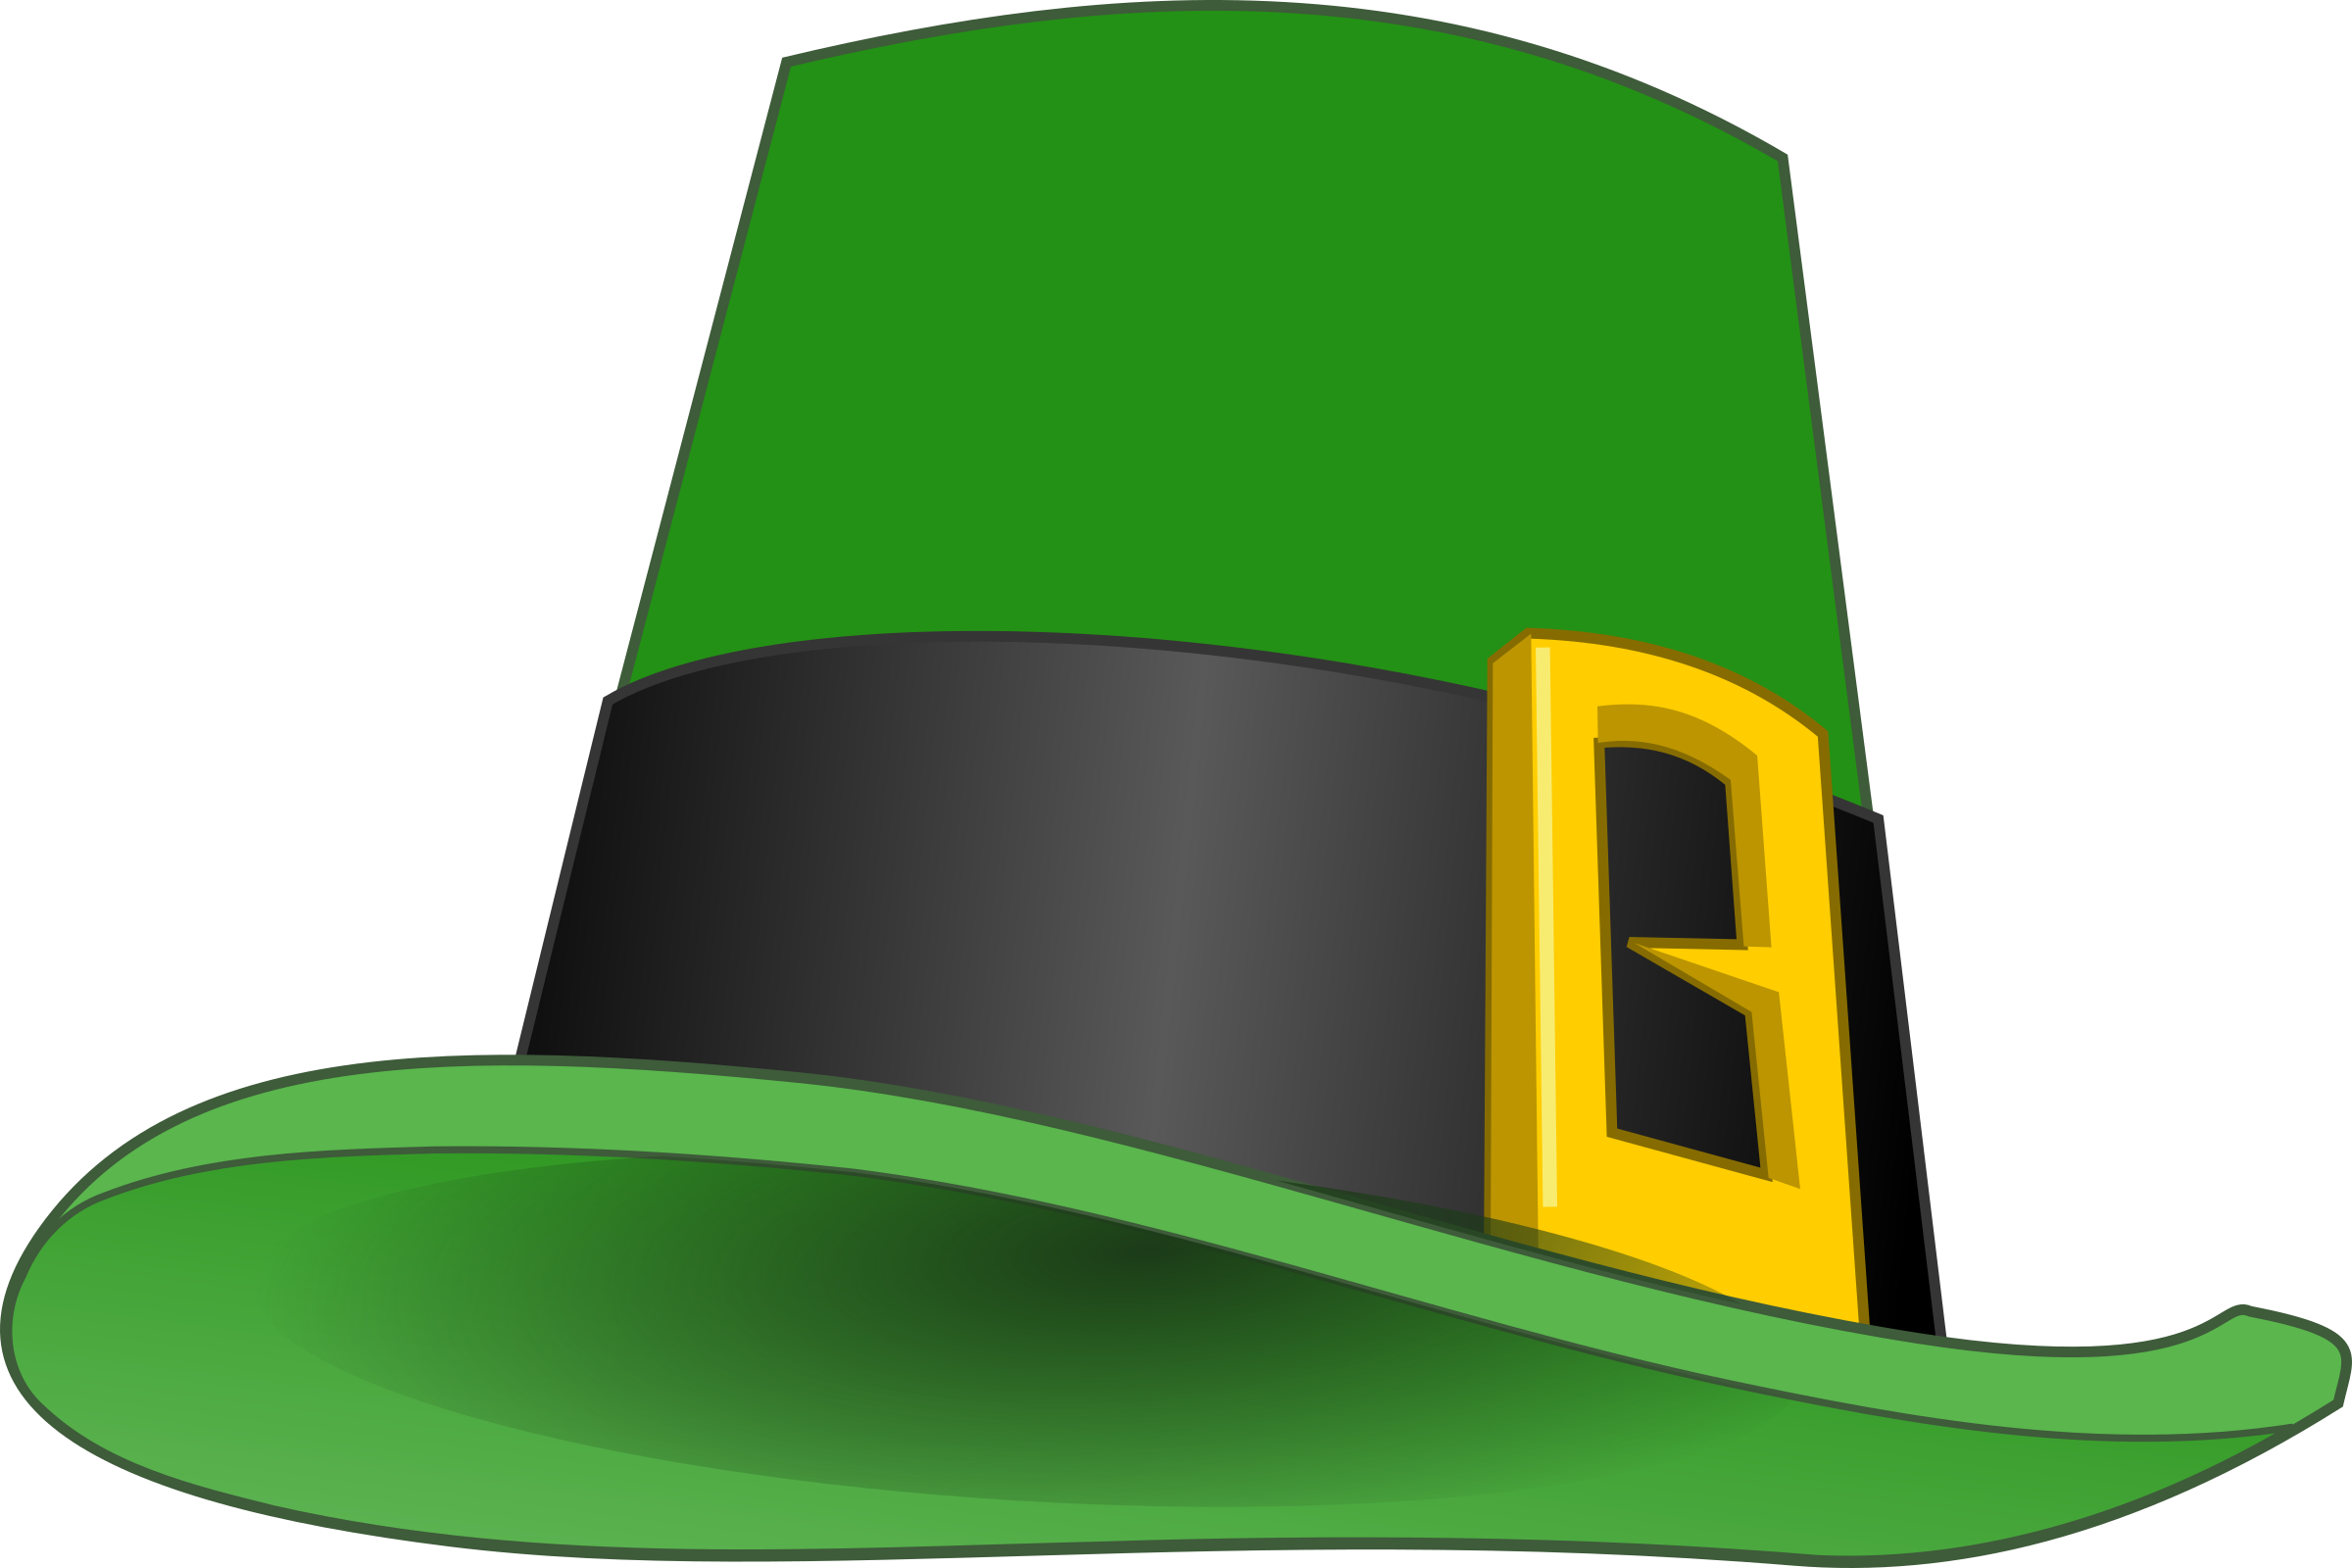 Leprechaun's hat 2 by mairin